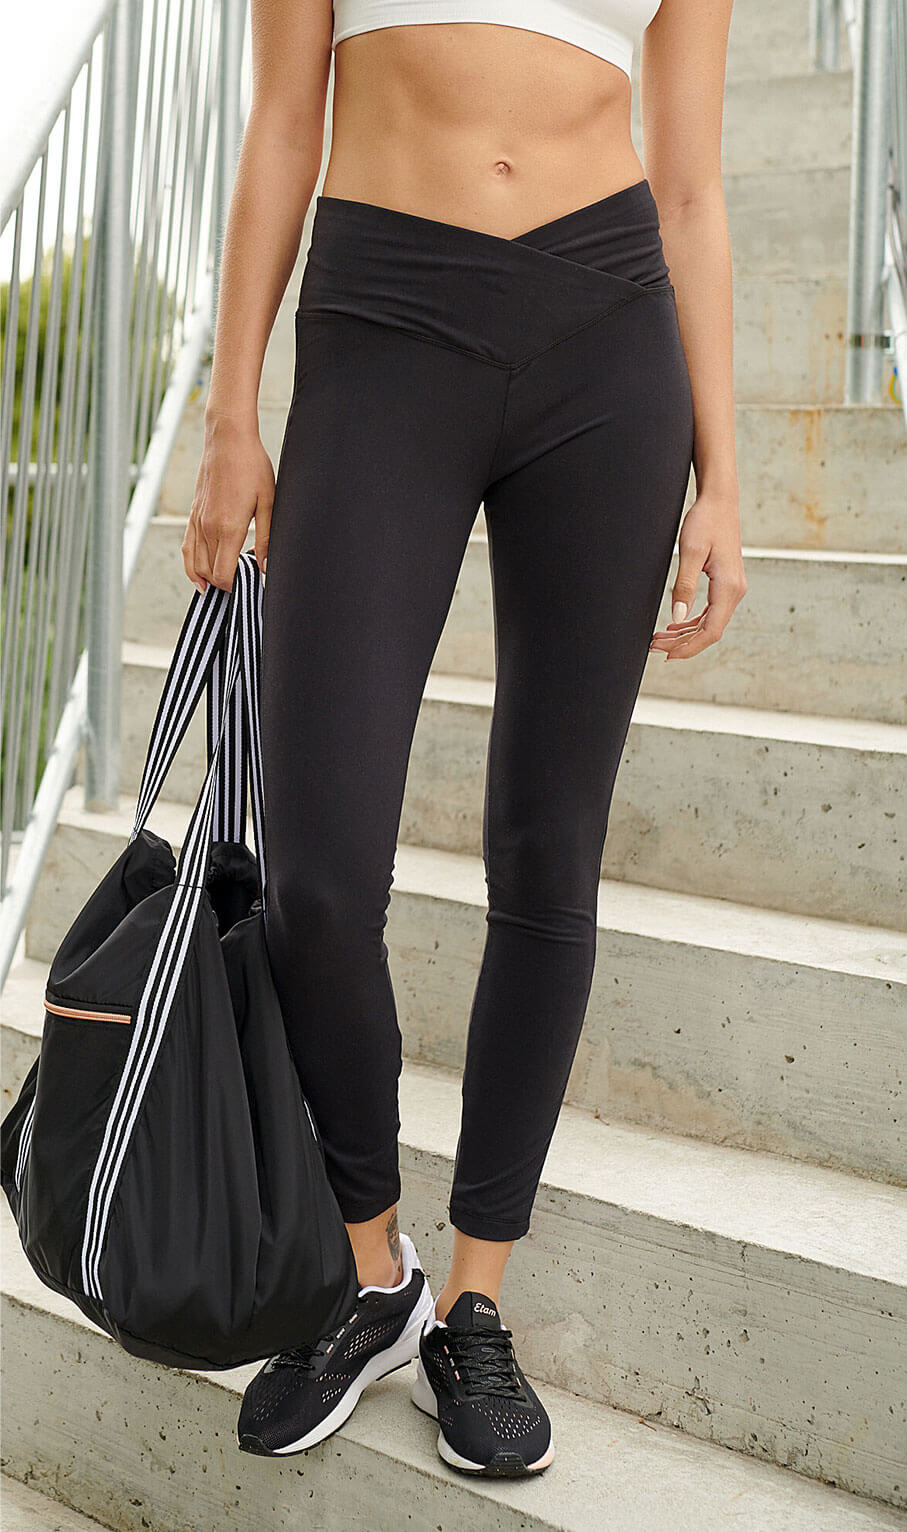 Etam - Legging de sport long